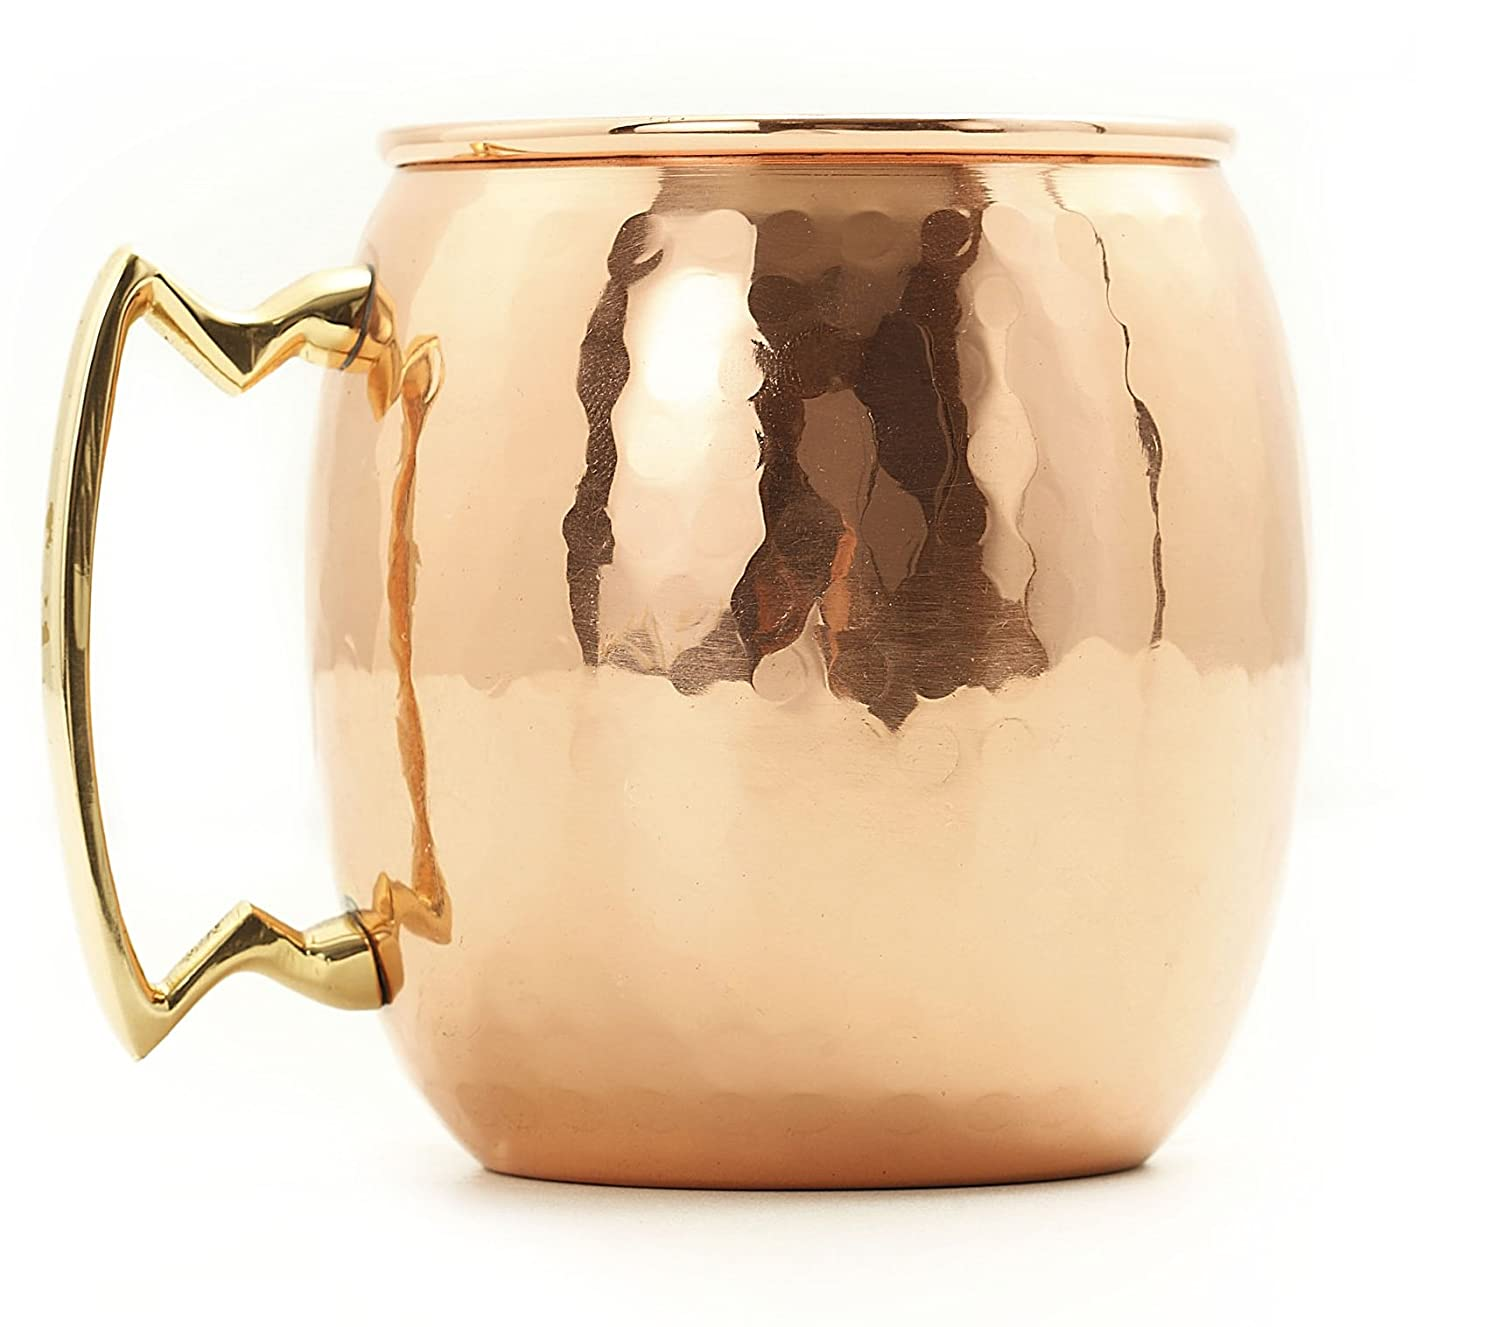 amazoncom old dutch nickellined solid copper hammered moscow mule mug 16 oz kitchen u0026 dining